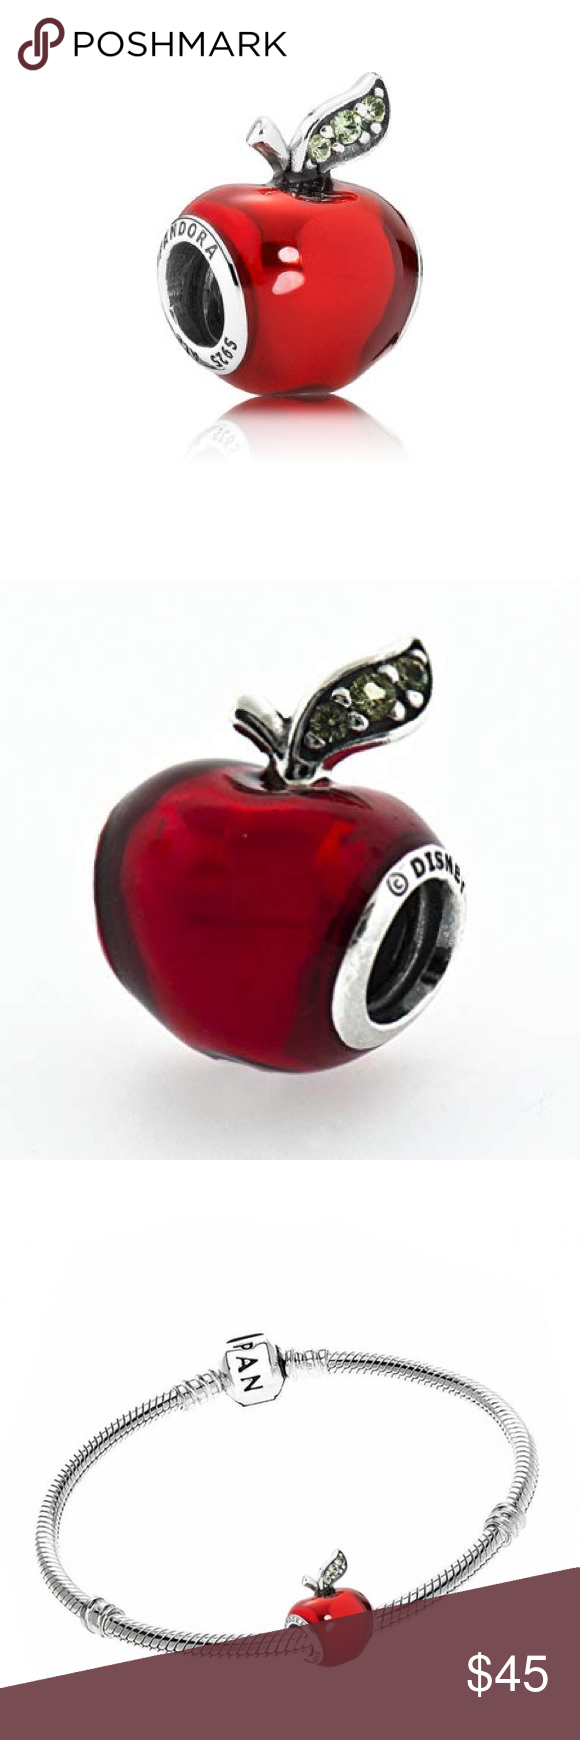 Pandora Disney Snow White's Apple Charm Pandora disney